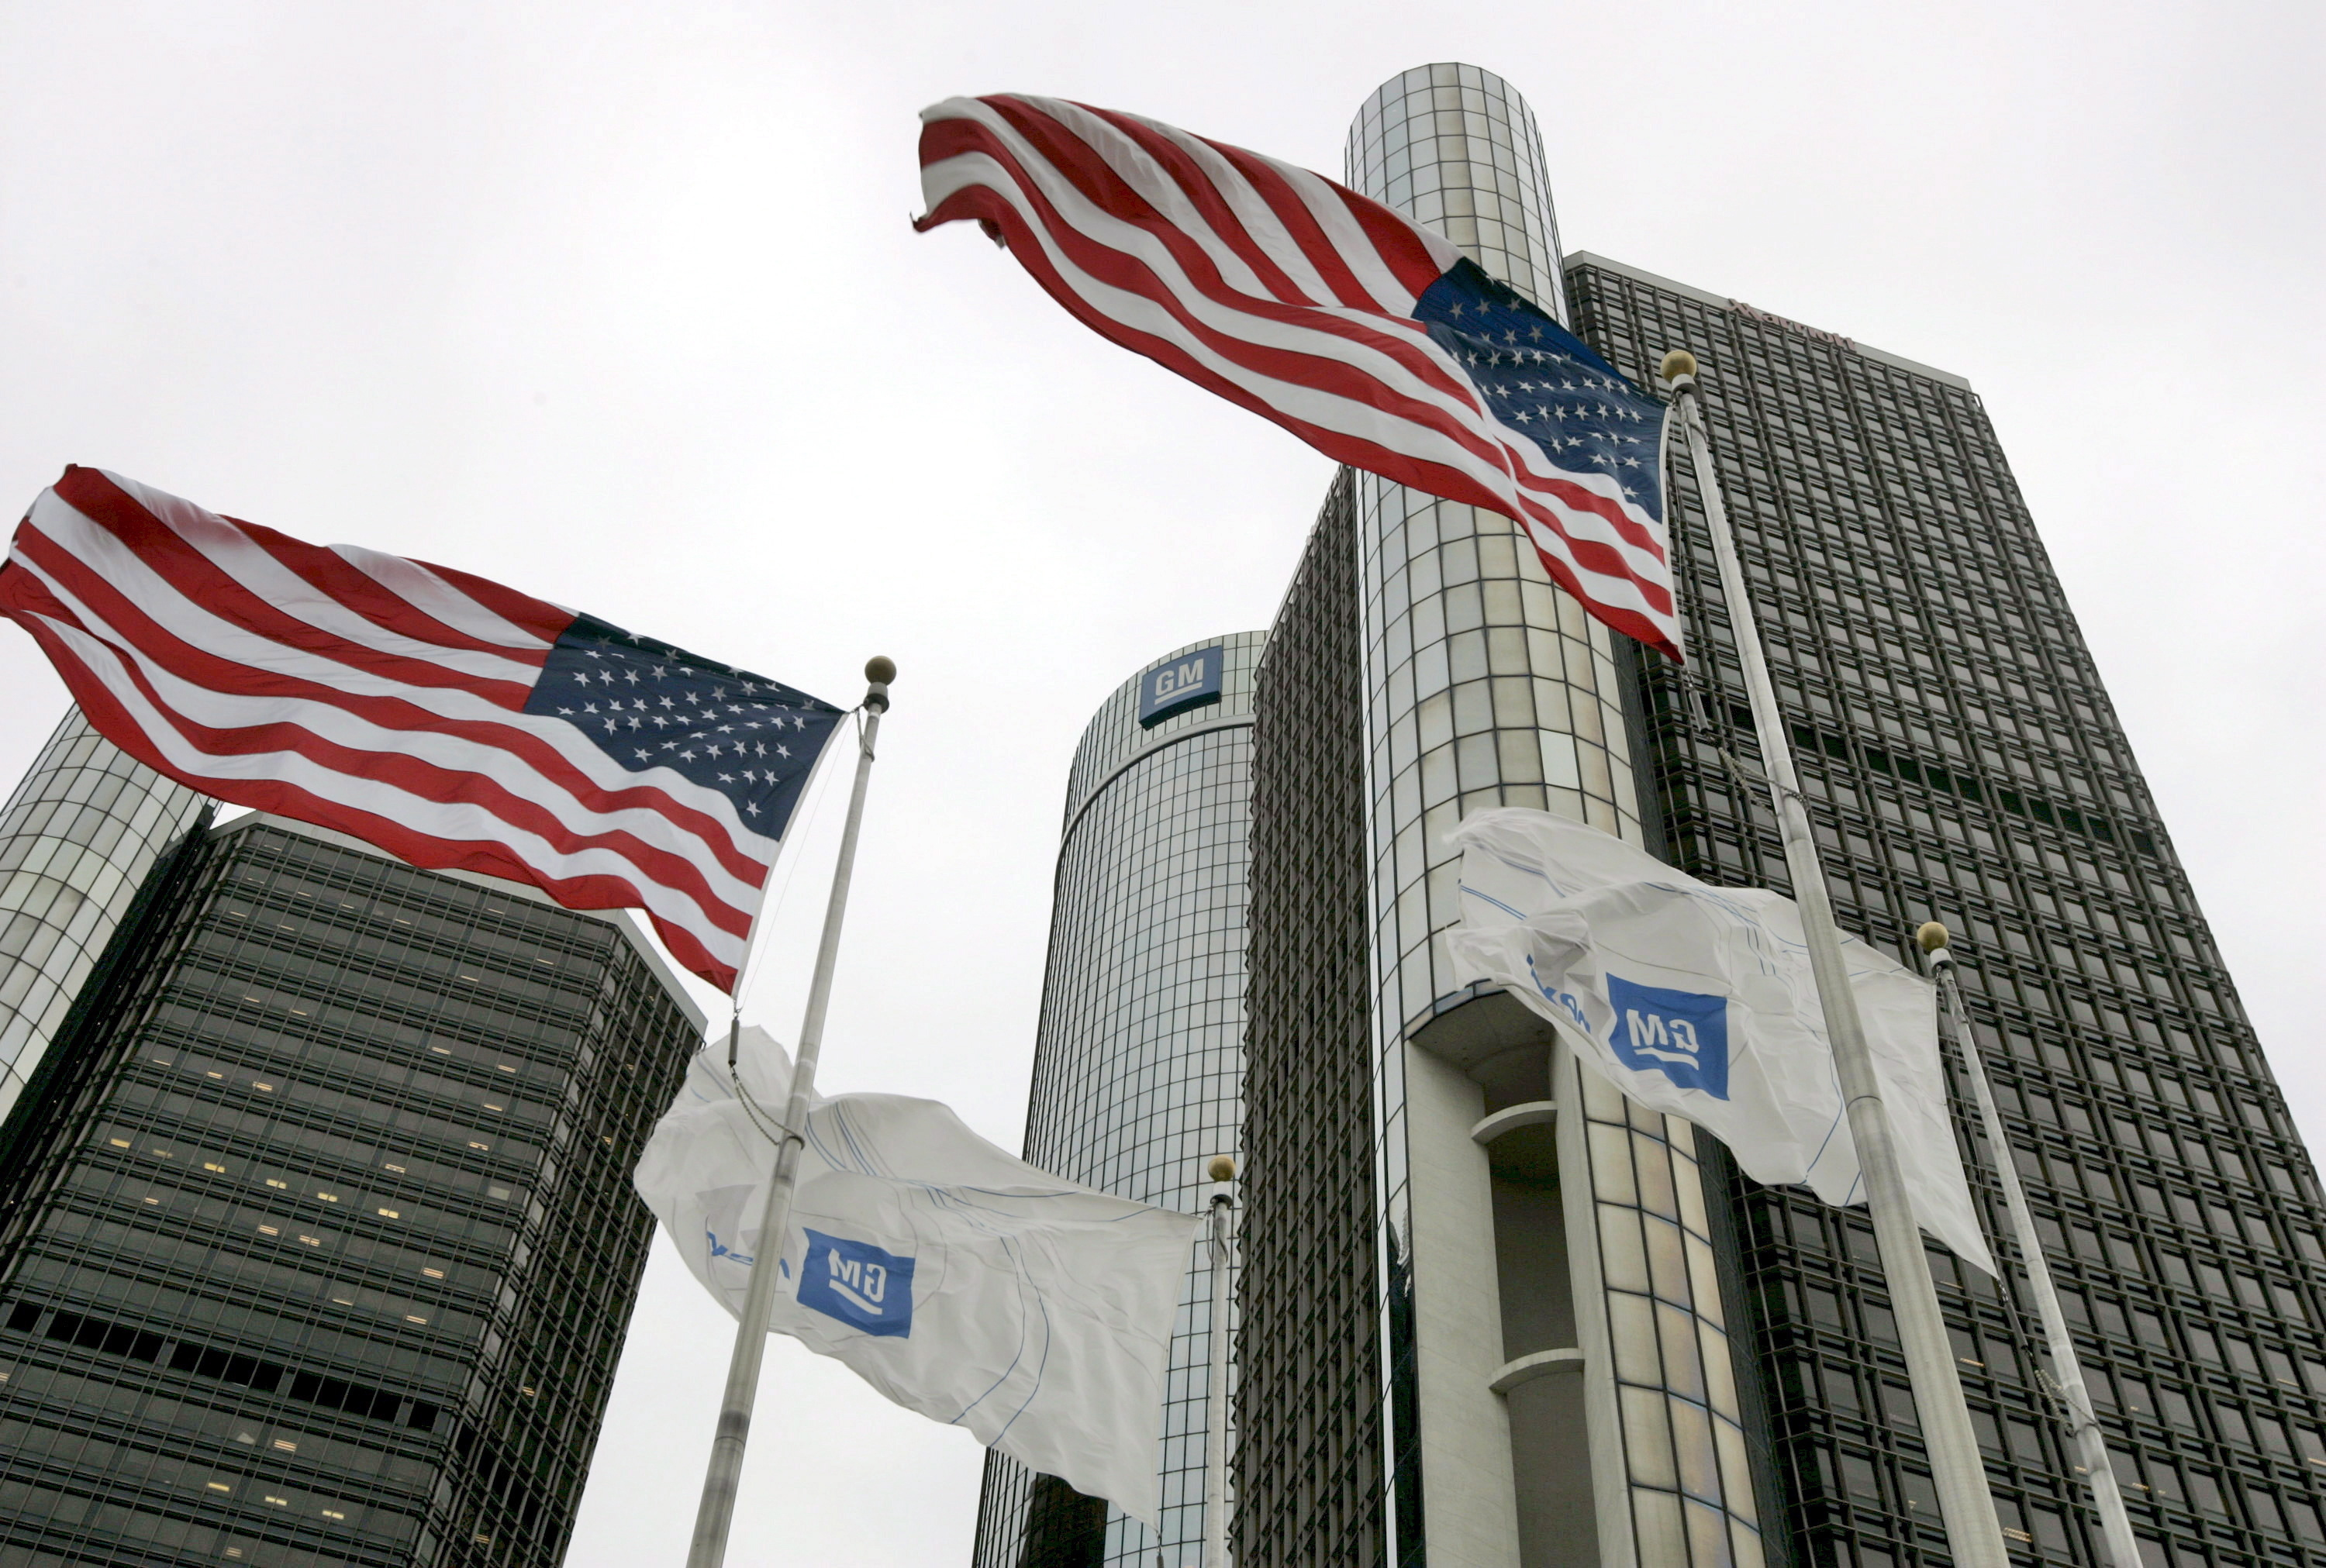 General Motors will lay off up to 14,000 workers in North America.